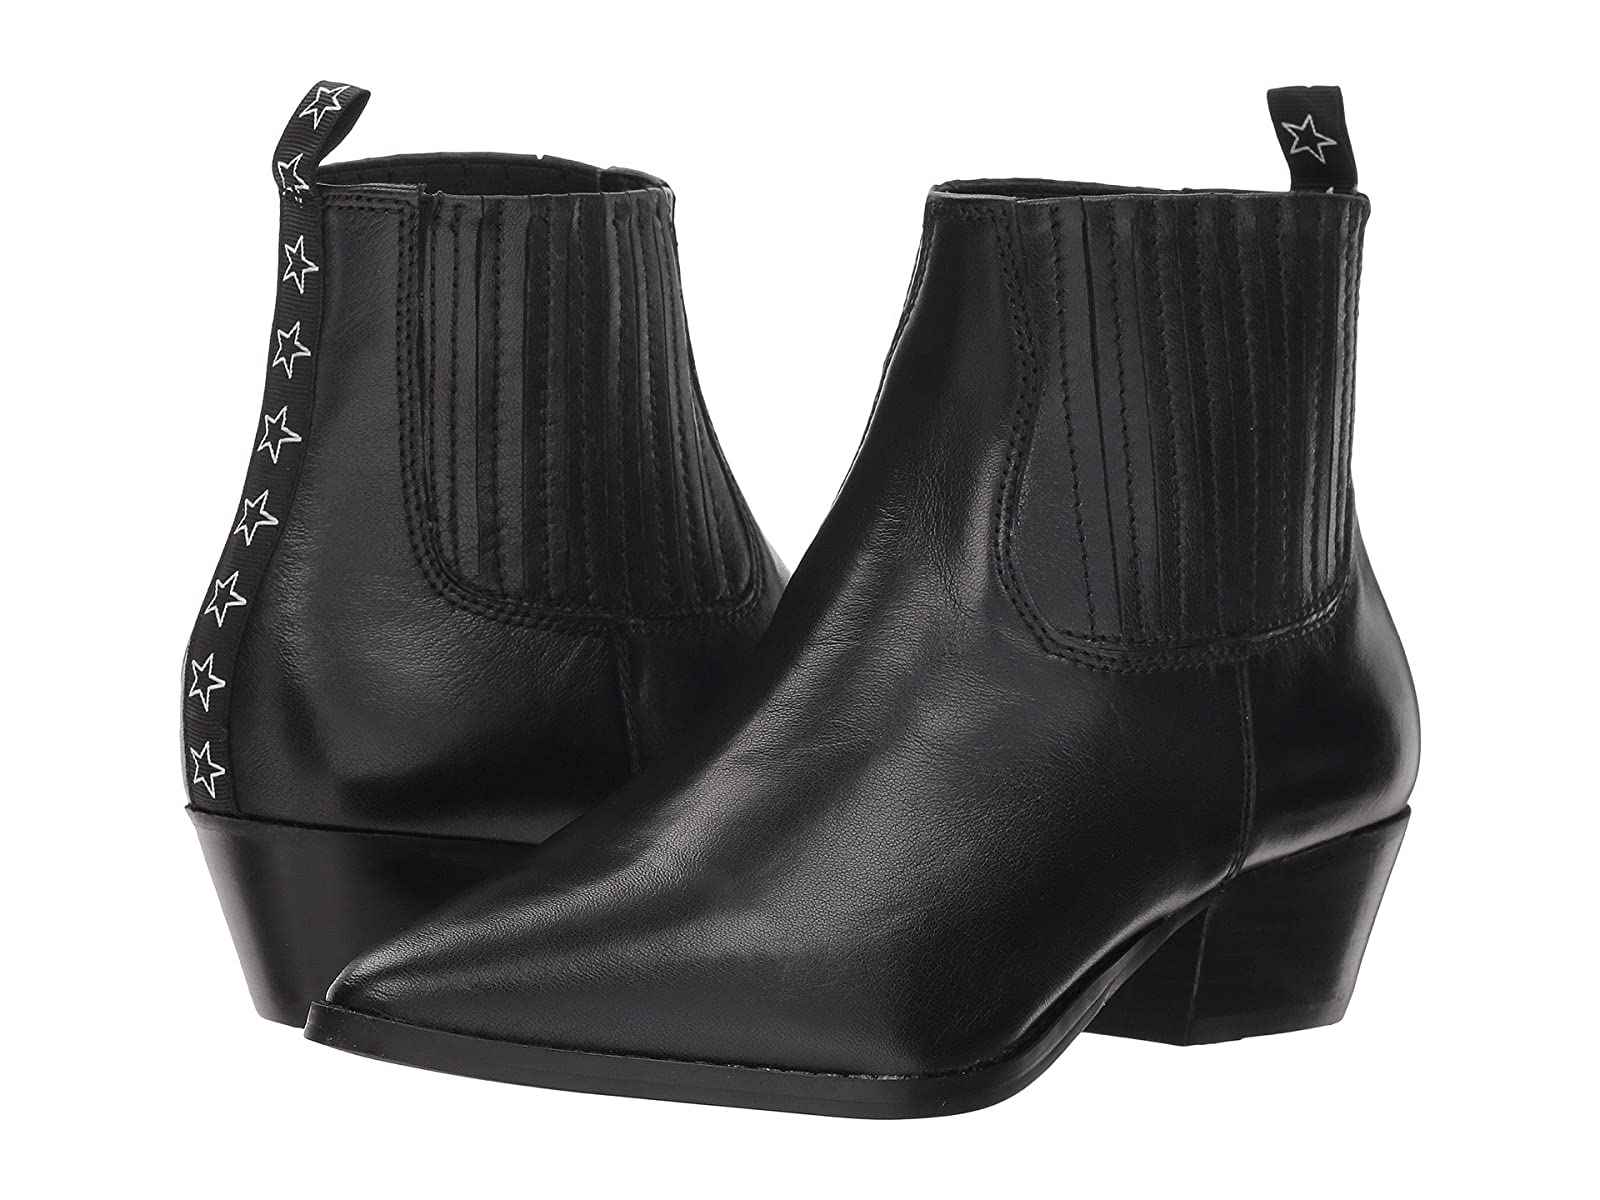 Steve Madden WestieEconomical and quality shoes